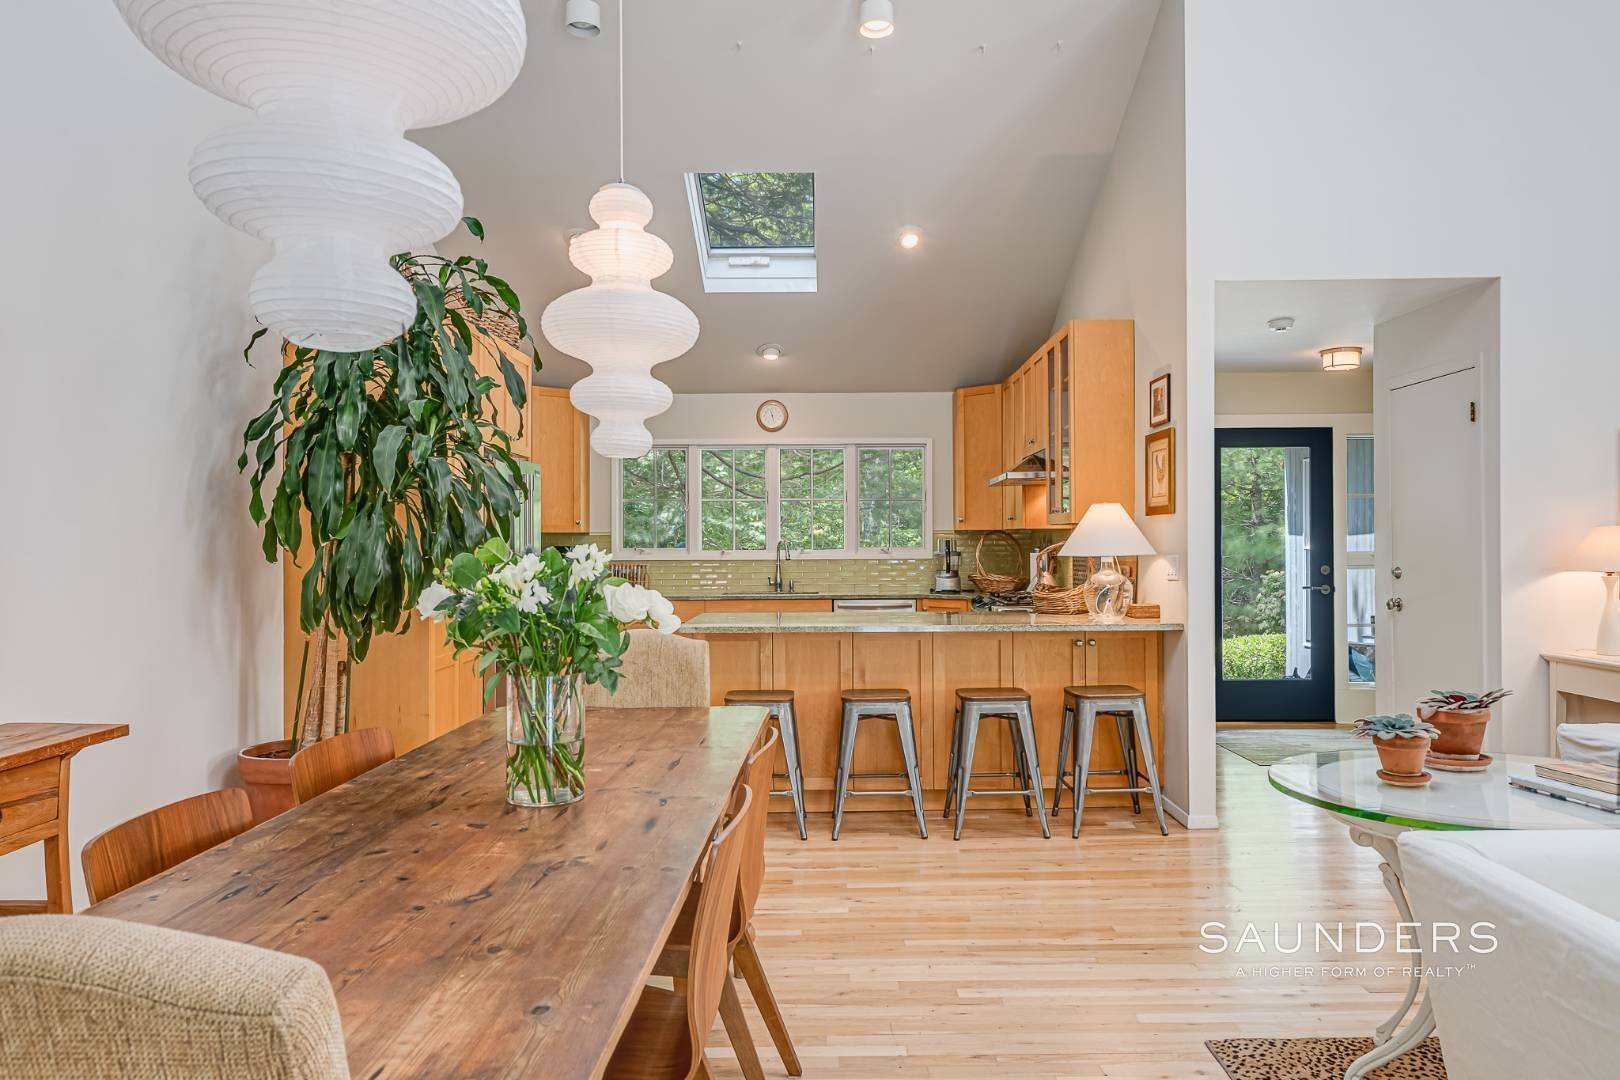 9. Single Family Homes for Sale at Beach House By The Bay 31 Long Woods Lane, East Hampton, East Hampton Town, NY 11937